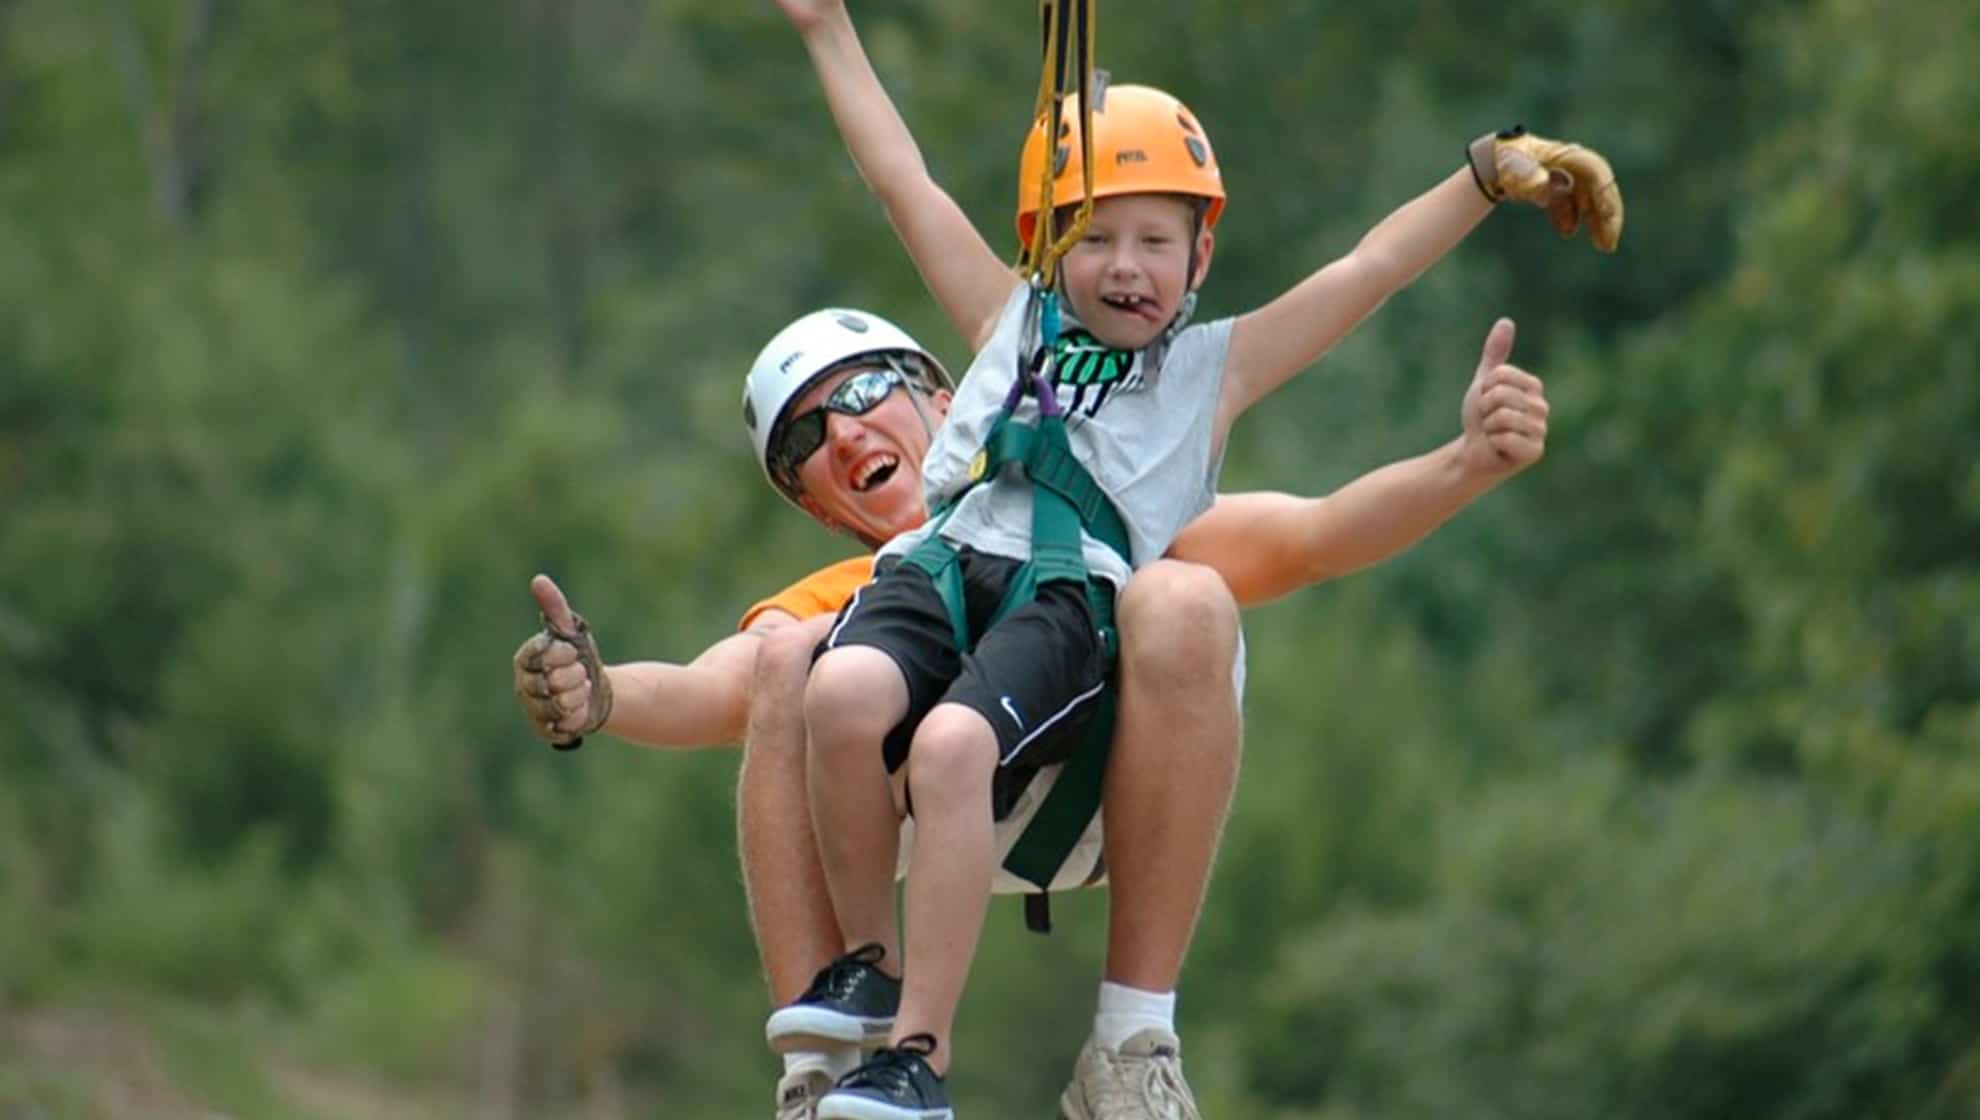 Zip tandem at adventure park ziplines